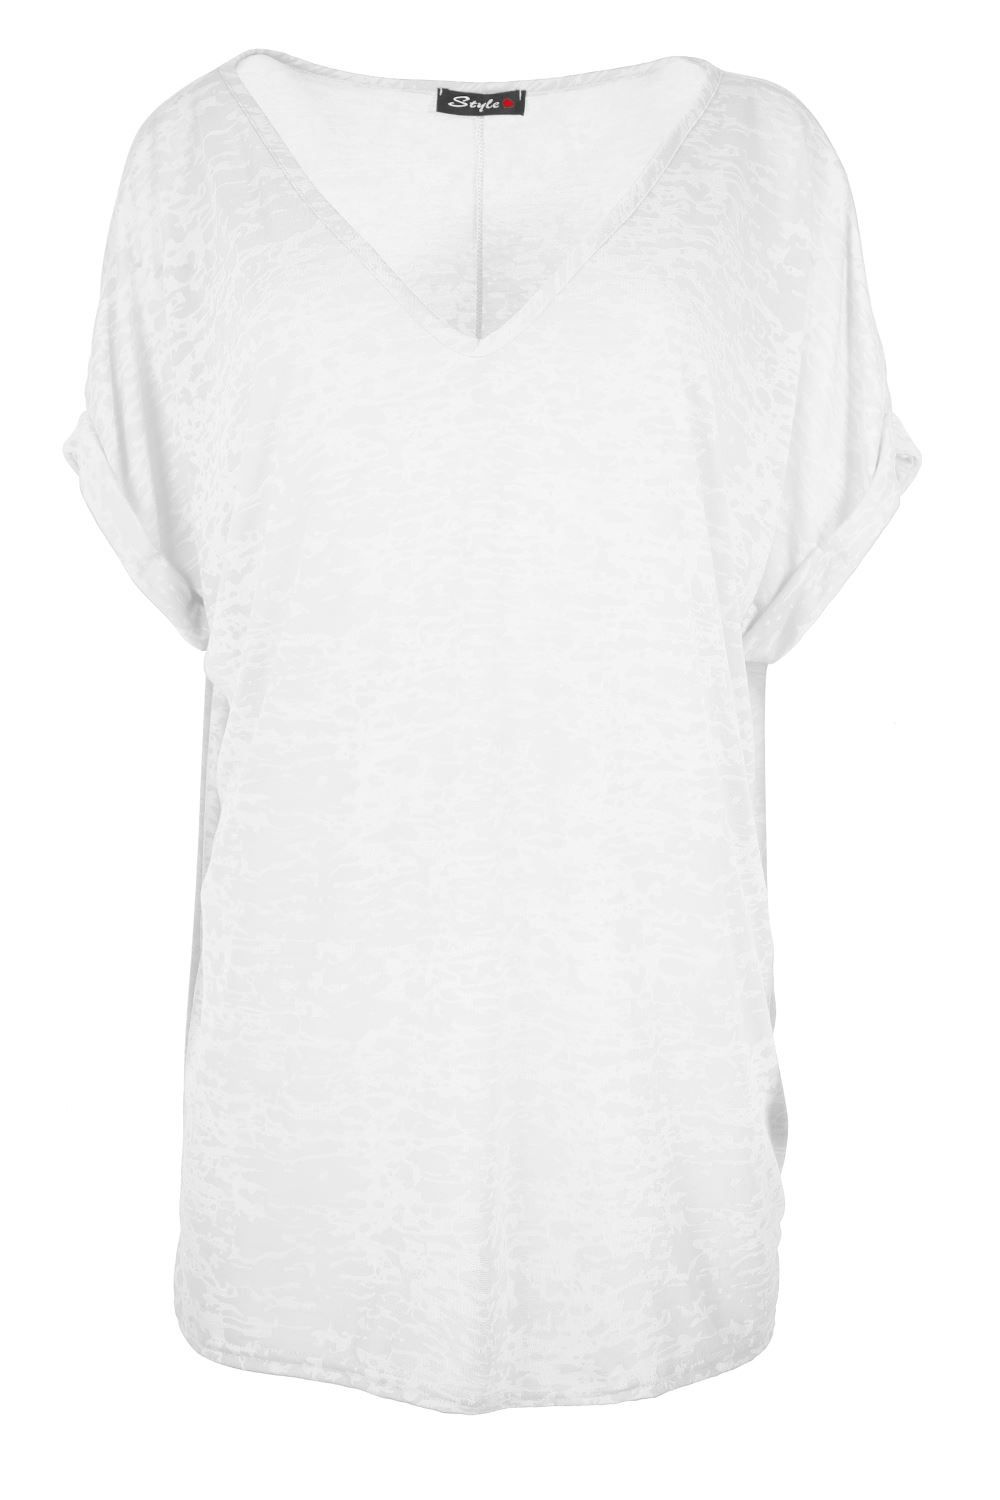 Women Oversized Baggy Loose Fit Turn up Batwing Sleeve Tunic Top T shirt UK